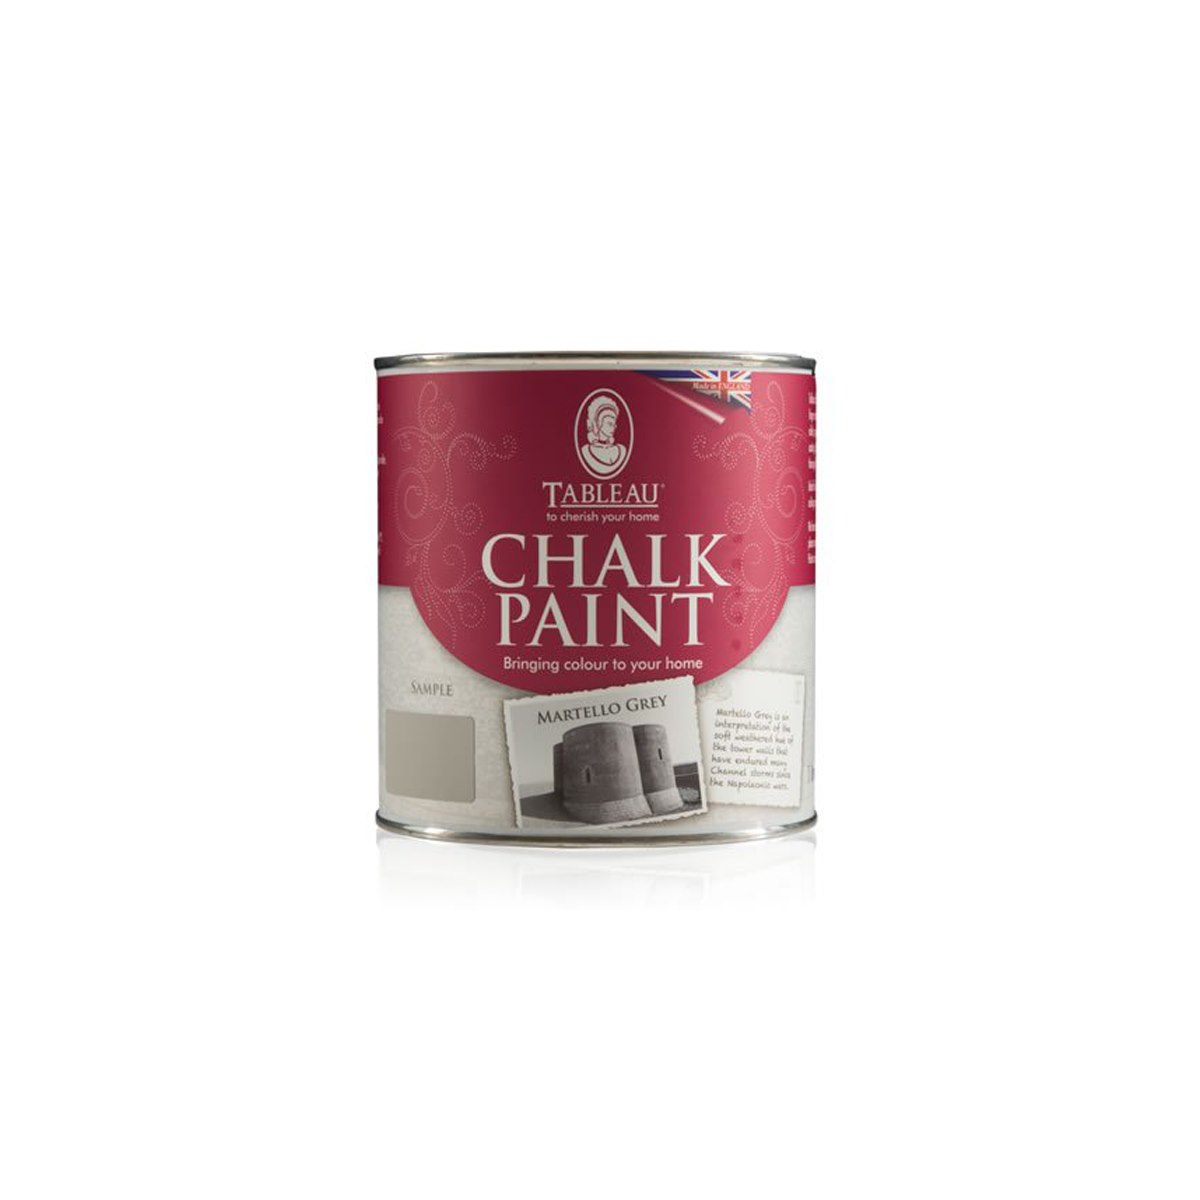 Tableau Chalk Paint Martello Grey 500ml